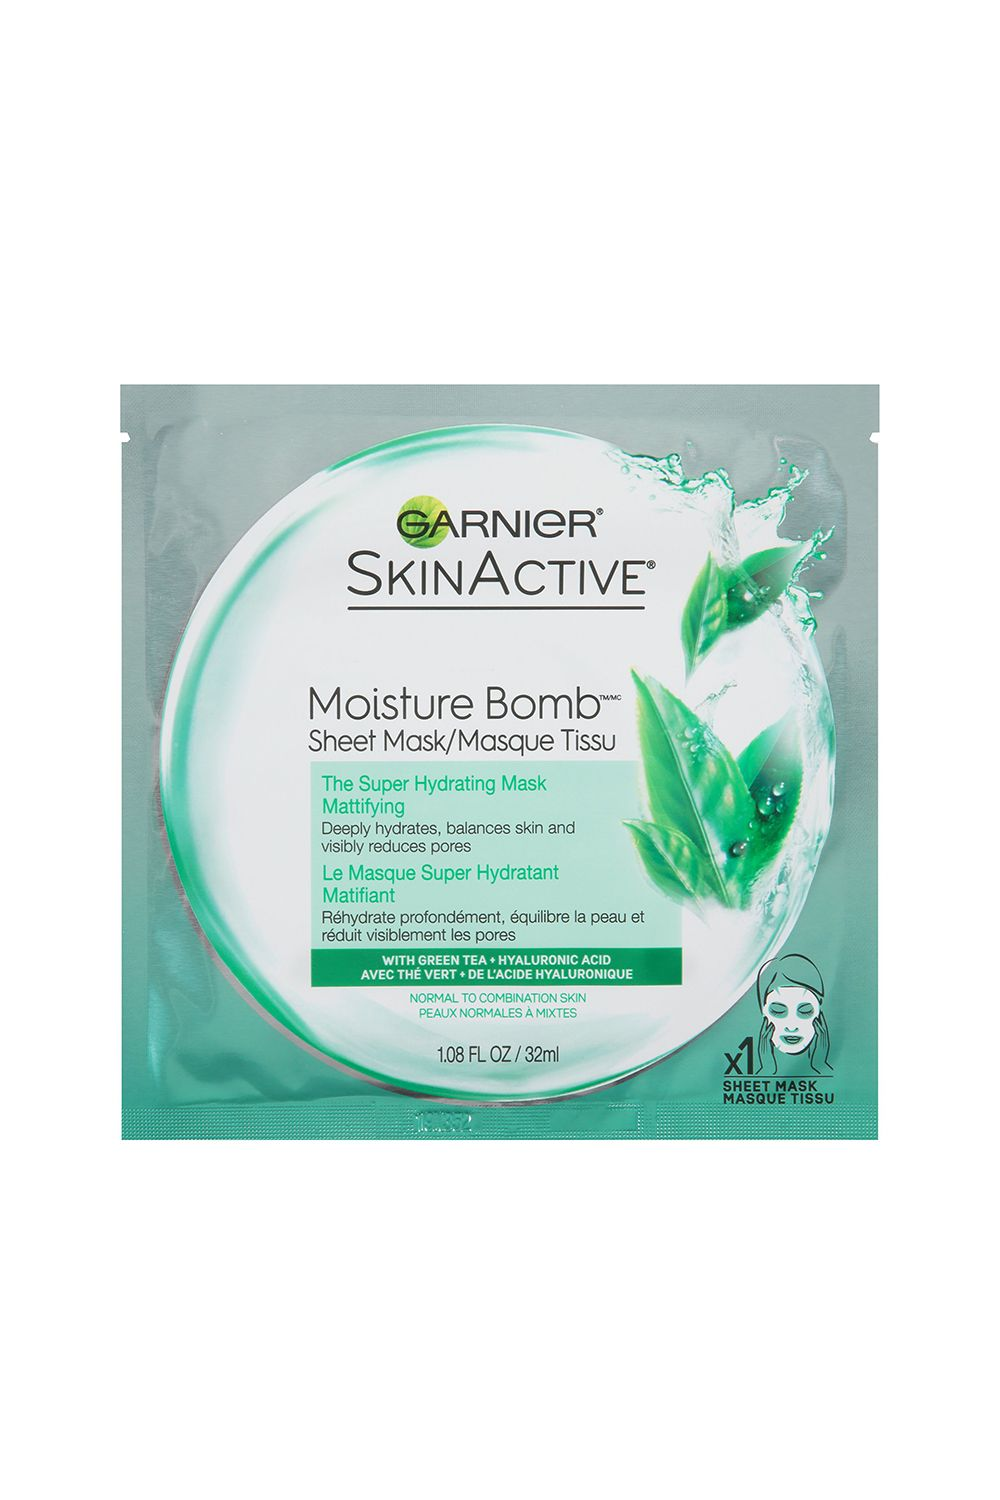 Garnier SkinActive Moisture Bomb The Super Hydrating Mask Garnier SkinActive Moisture Bomb The Super Hydrating Mask, $4 SHOP IT Calm your skin down from a long day at work with this green tea-infused, hydrating mask. Pro tip: wear it right before bed and wake up with glowing, extra-moisturized skin.